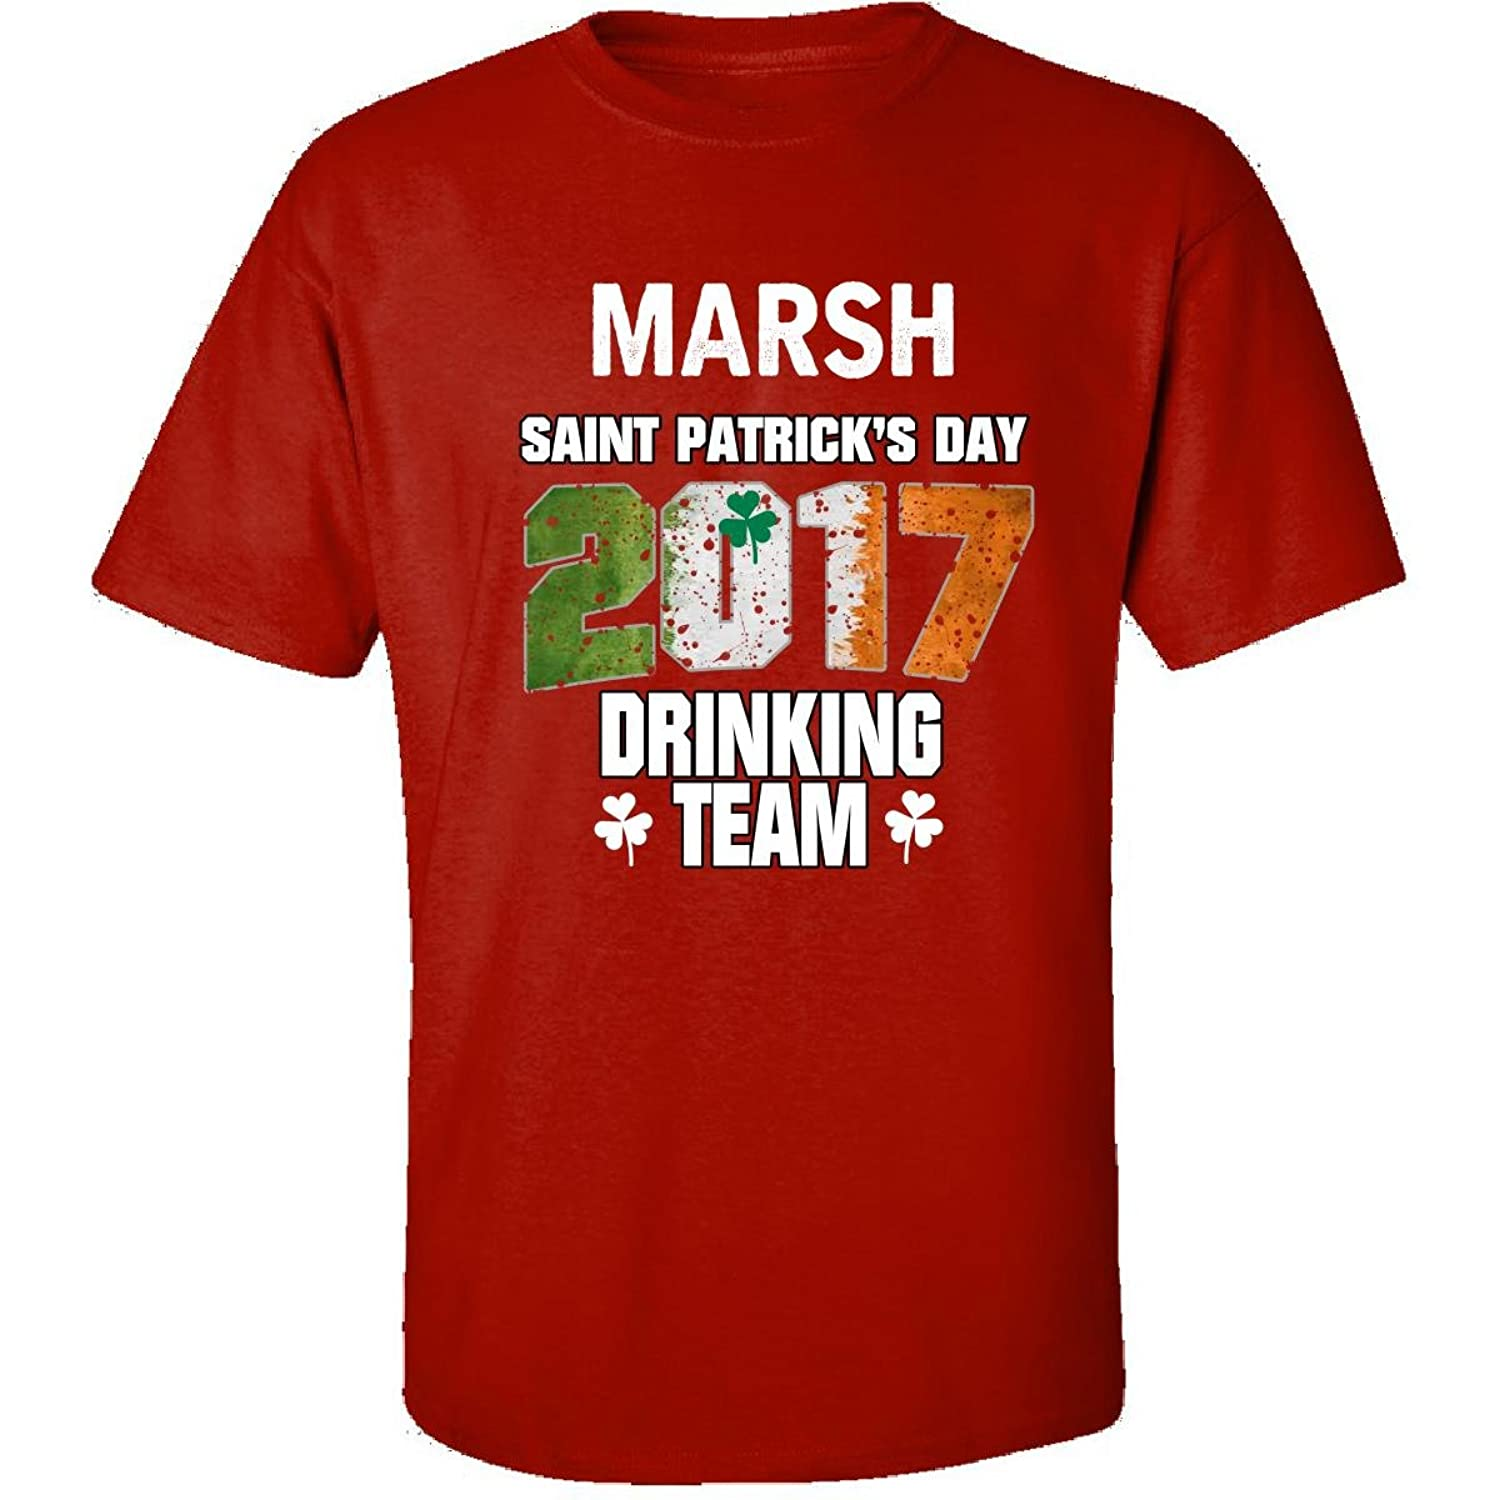 Marsh Irish St Patricks Day 2017 Drinking Team - Adult Shirt